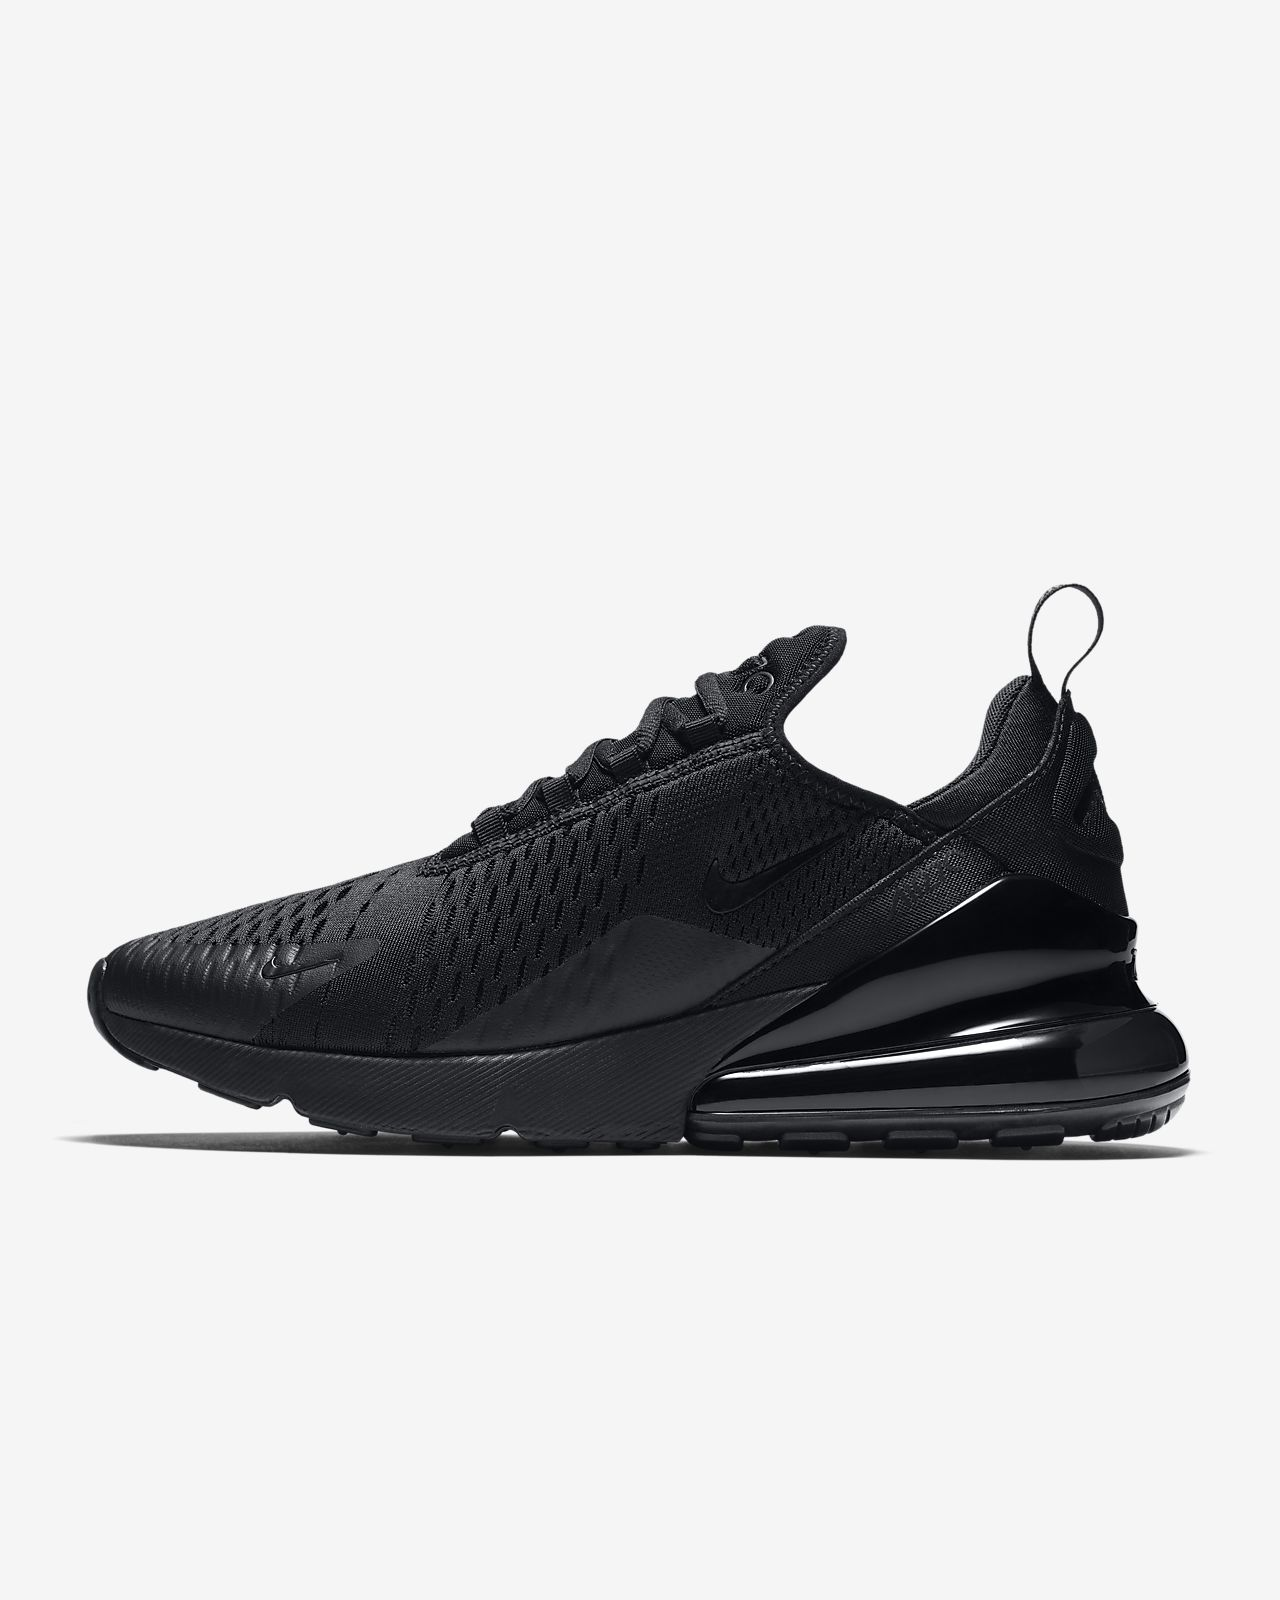 33bd3621c8 Nike Air Max 270 Men's Shoe. Nike.com AU